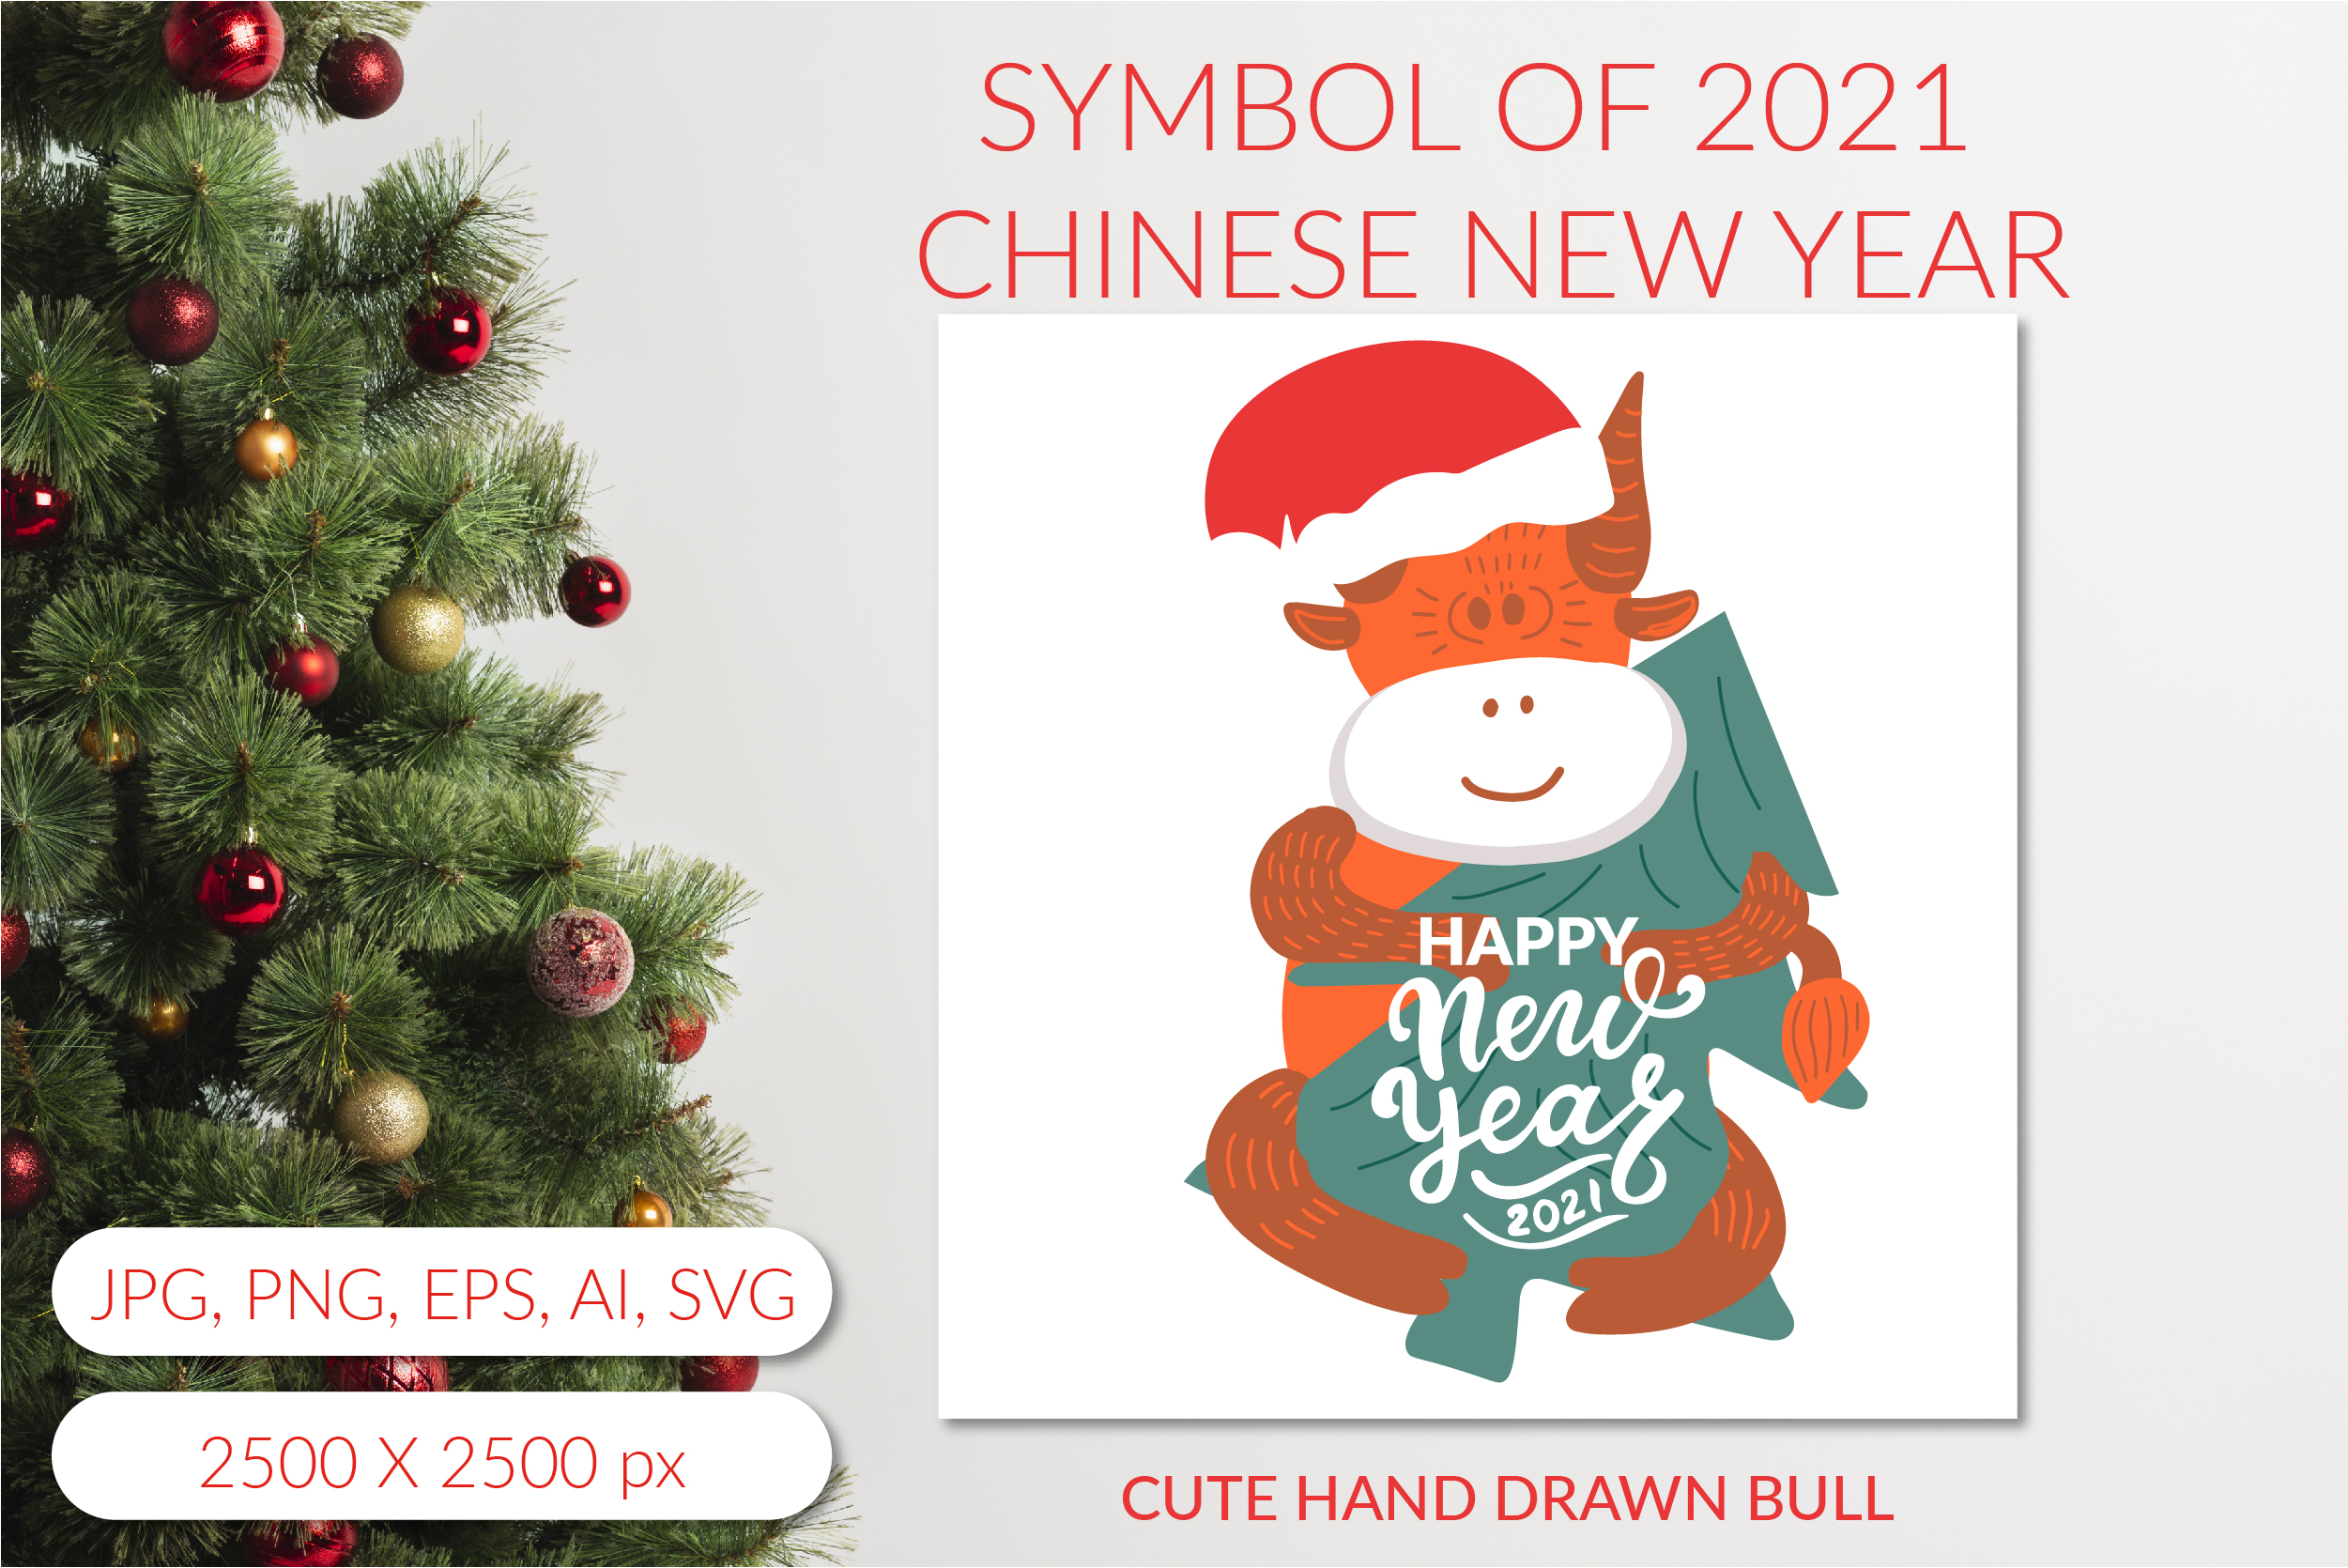 Download Free Bull 2021 Symbol Of Chinese New Year Graphic By for Cricut Explore, Silhouette and other cutting machines.